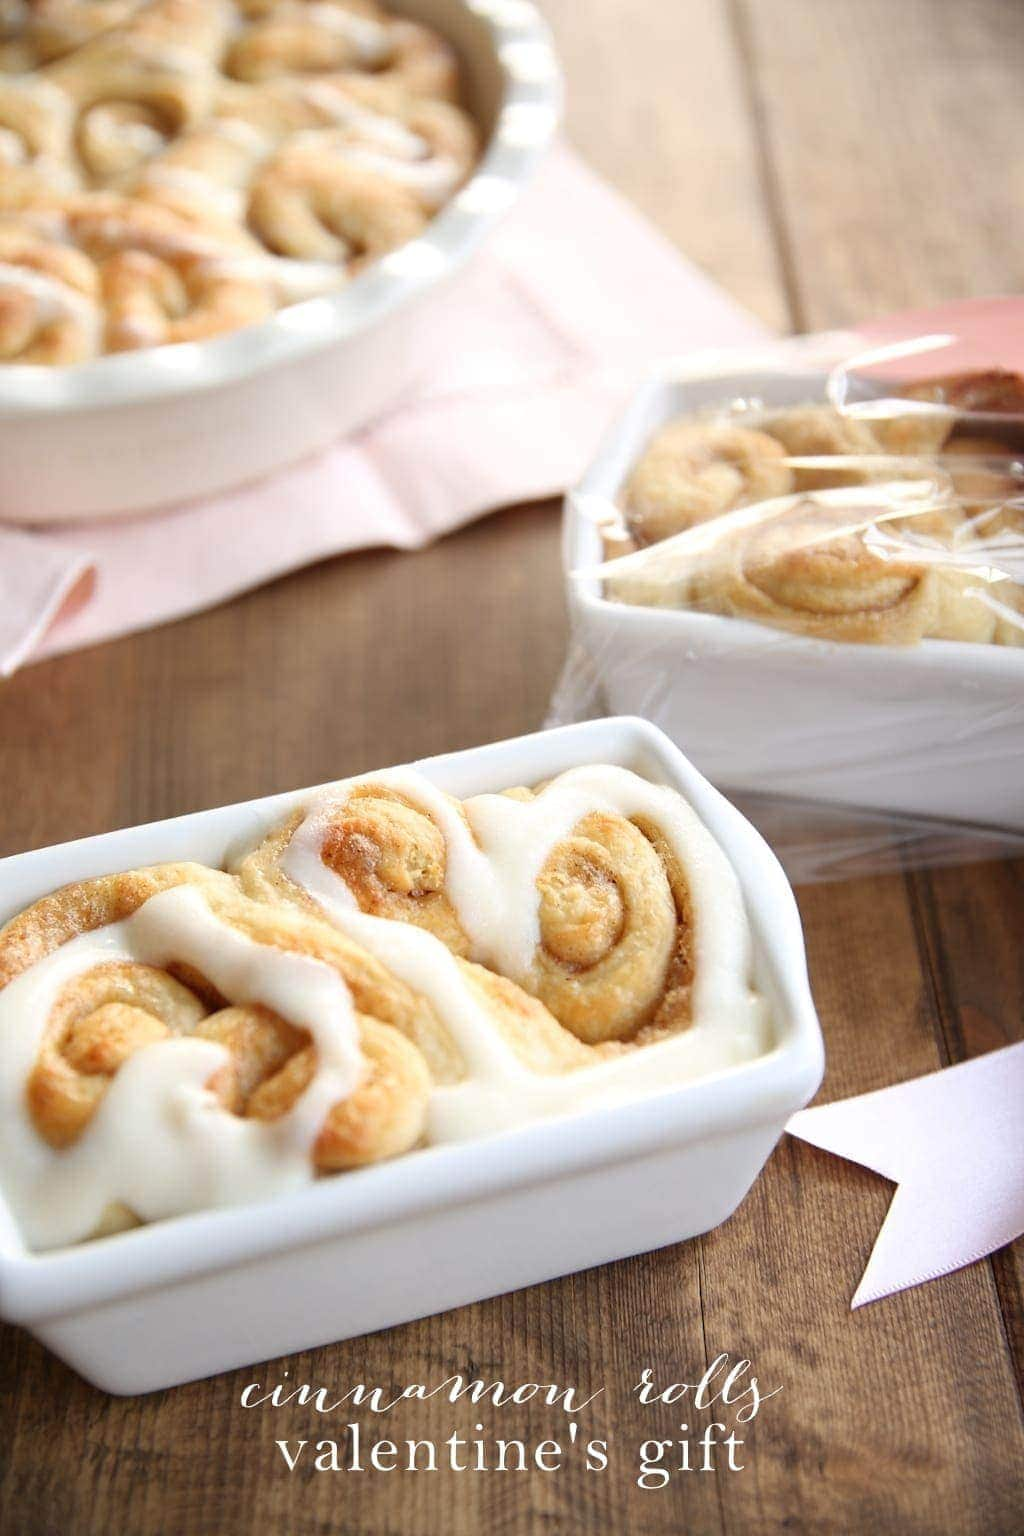 Heart Shaped Cinnamon Rolls Valentine's Day Gift